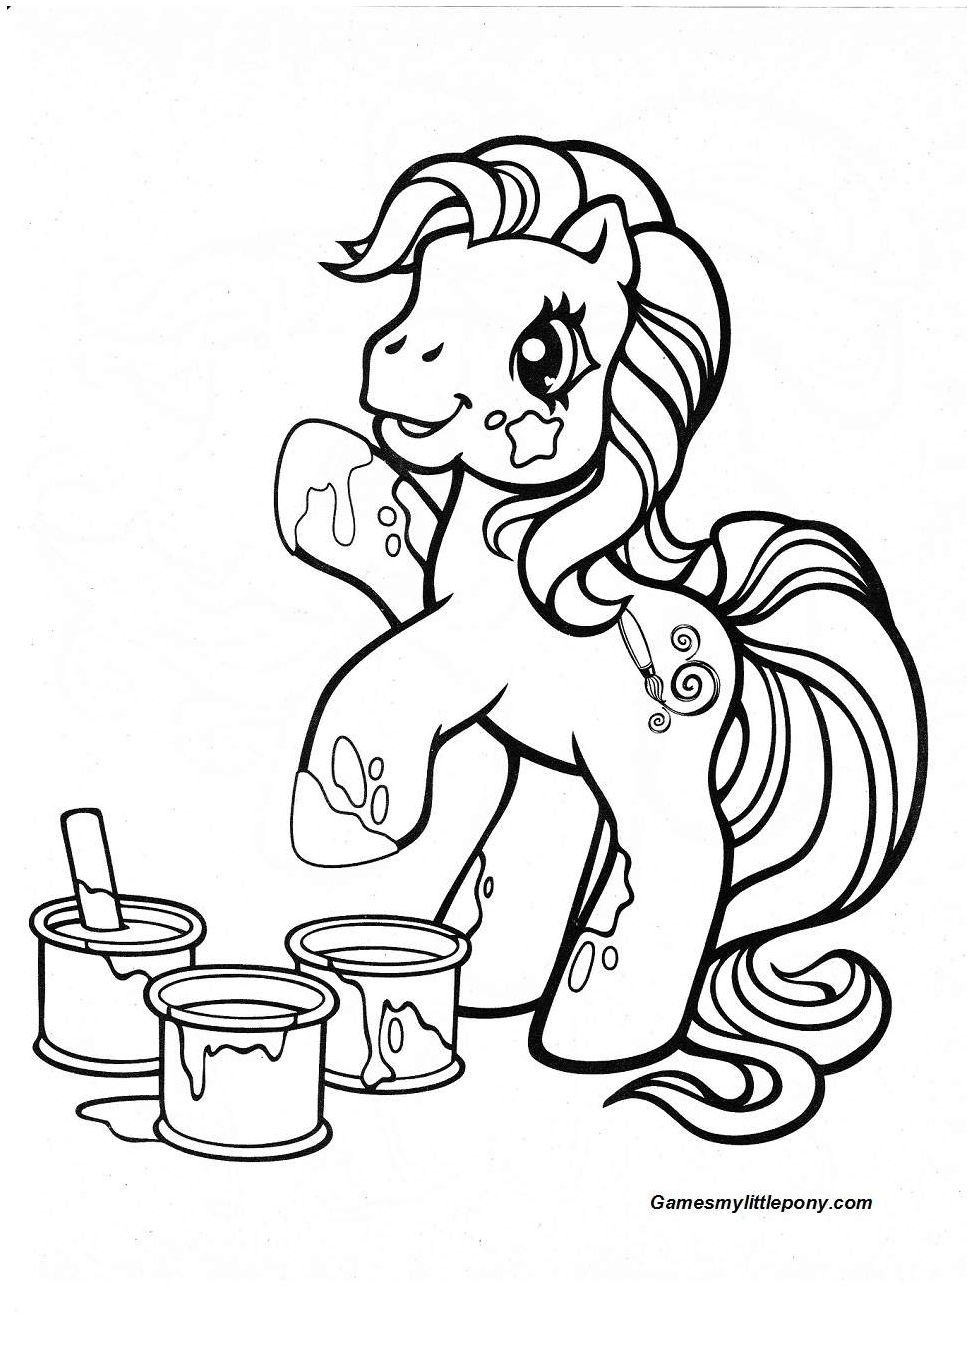 Mlp Toola Roola coloring Coloring Page